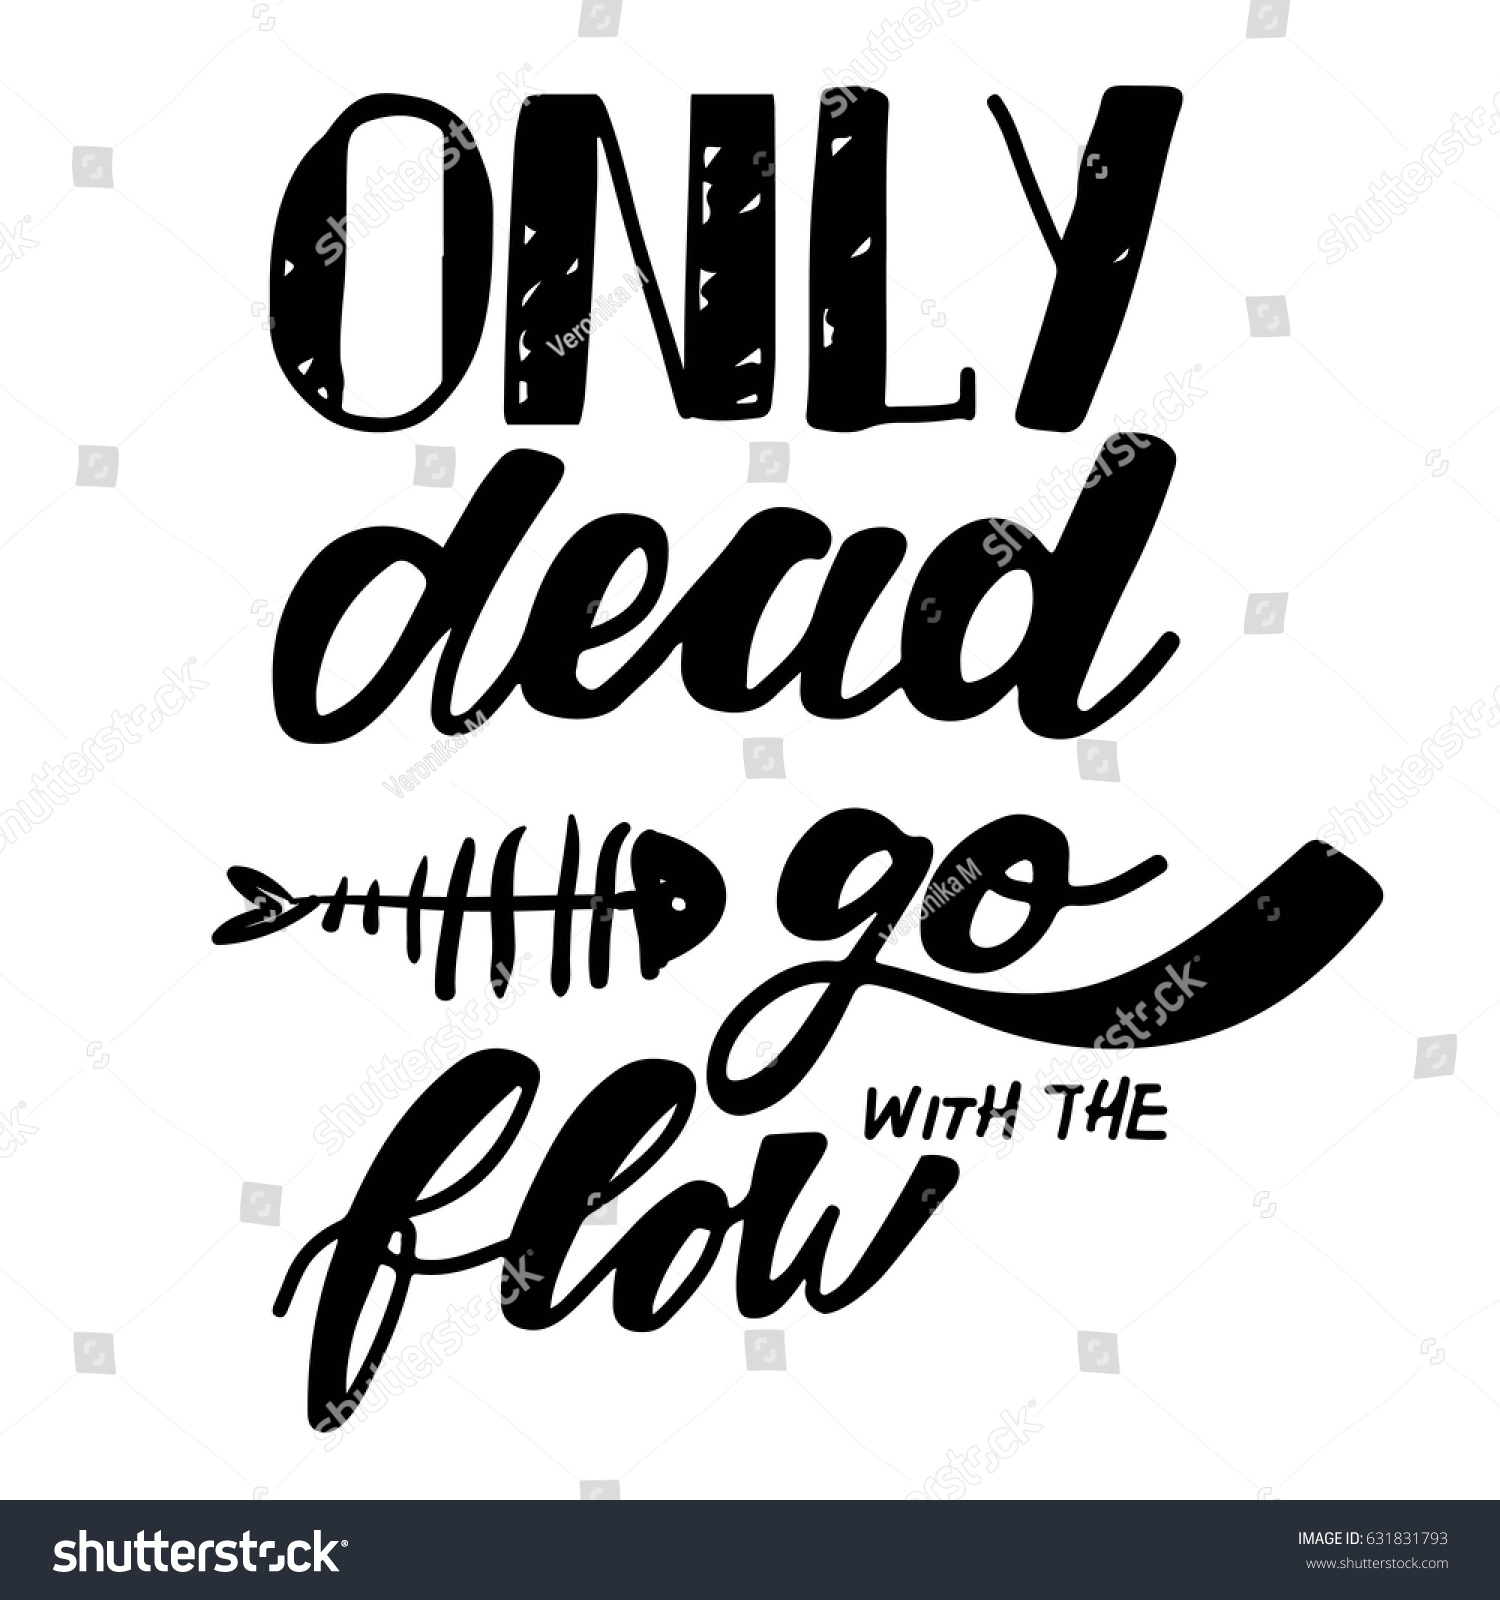 Fish Motivational Quotes: Only Dead Fish Go Flow Inspirational Stock Vector